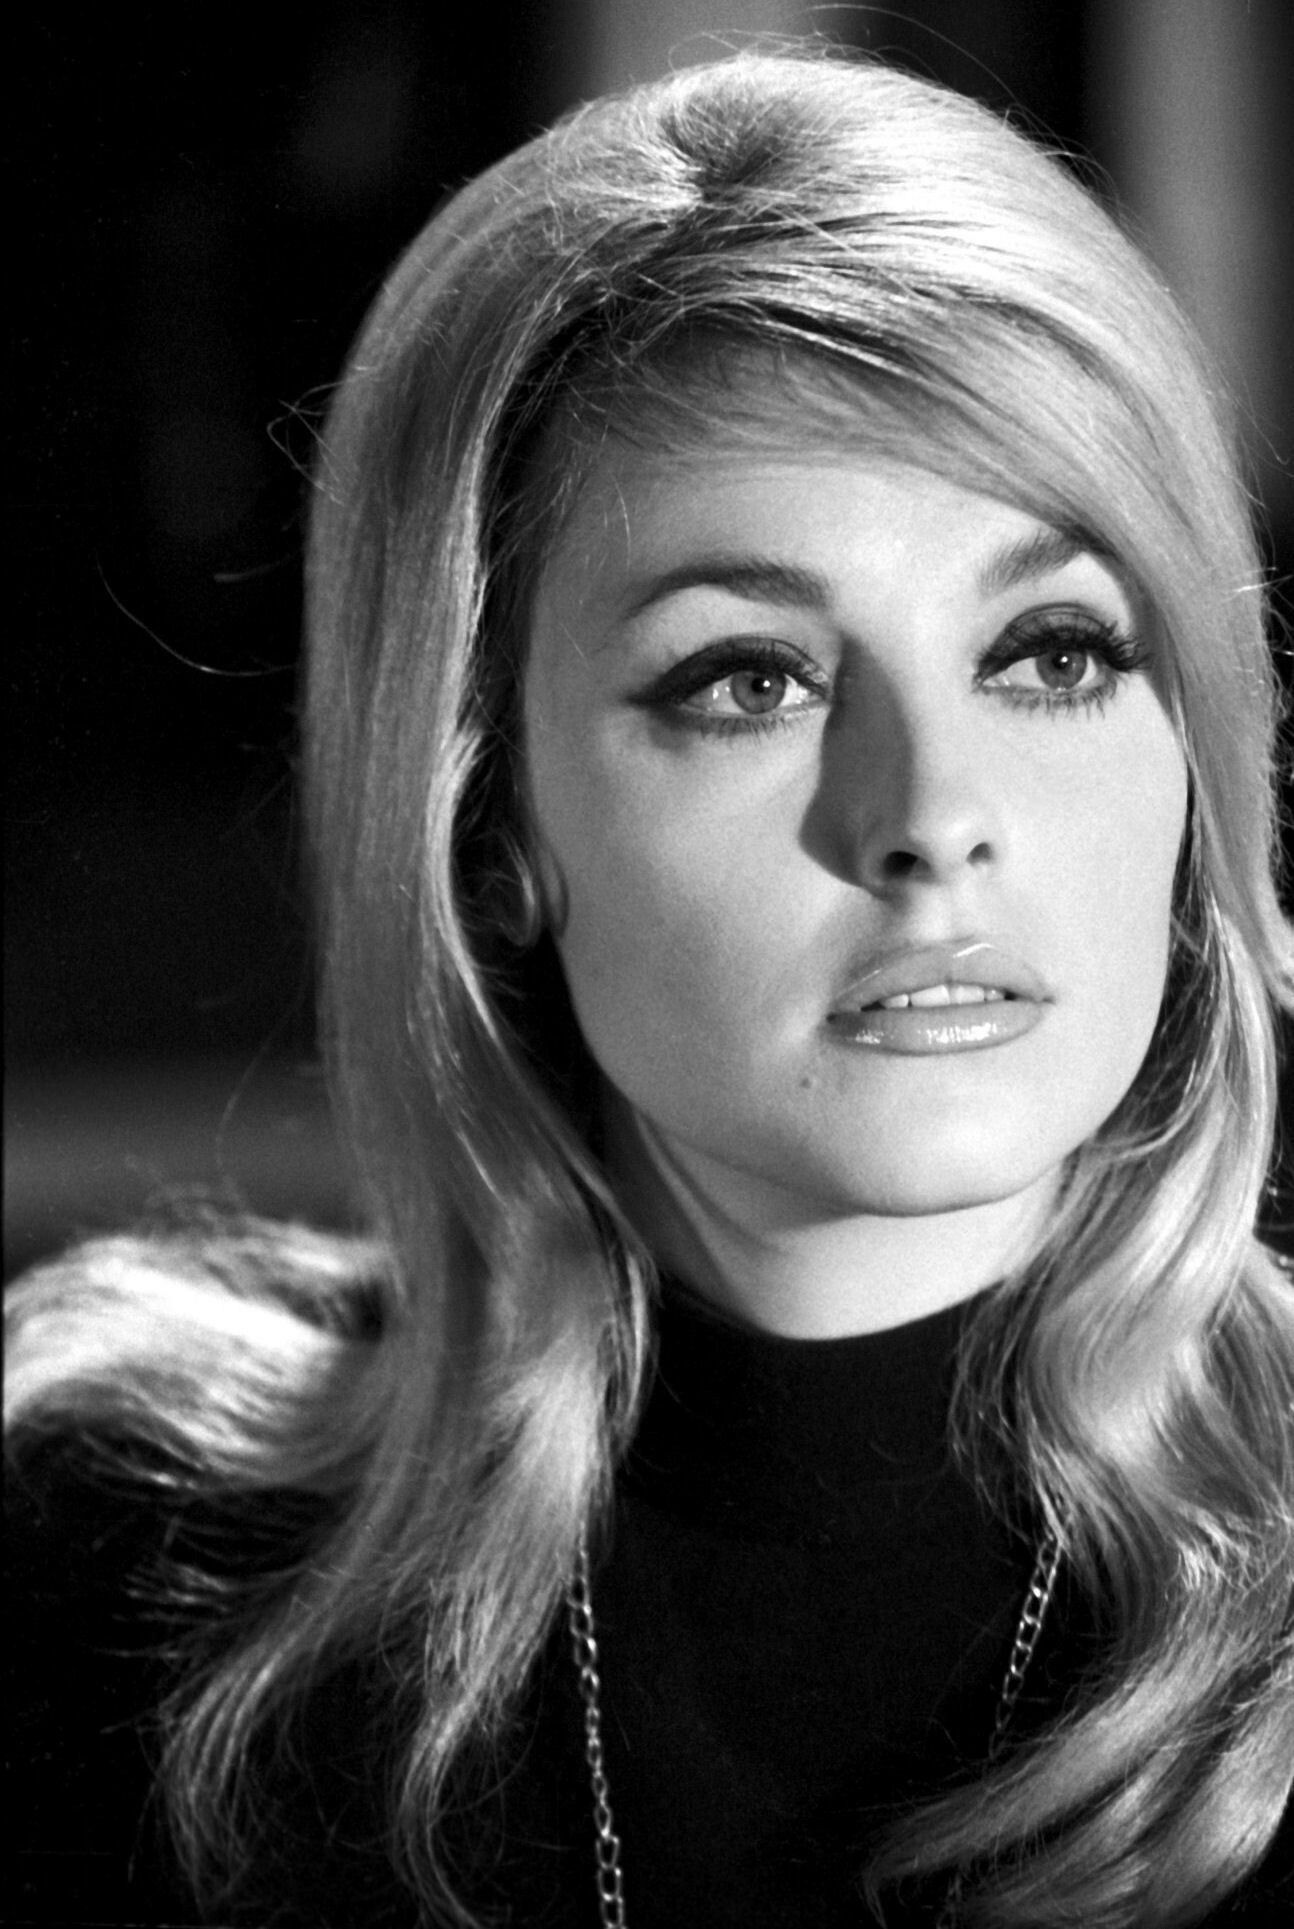 Sharon tate still think she was one of the most beautiful women ever